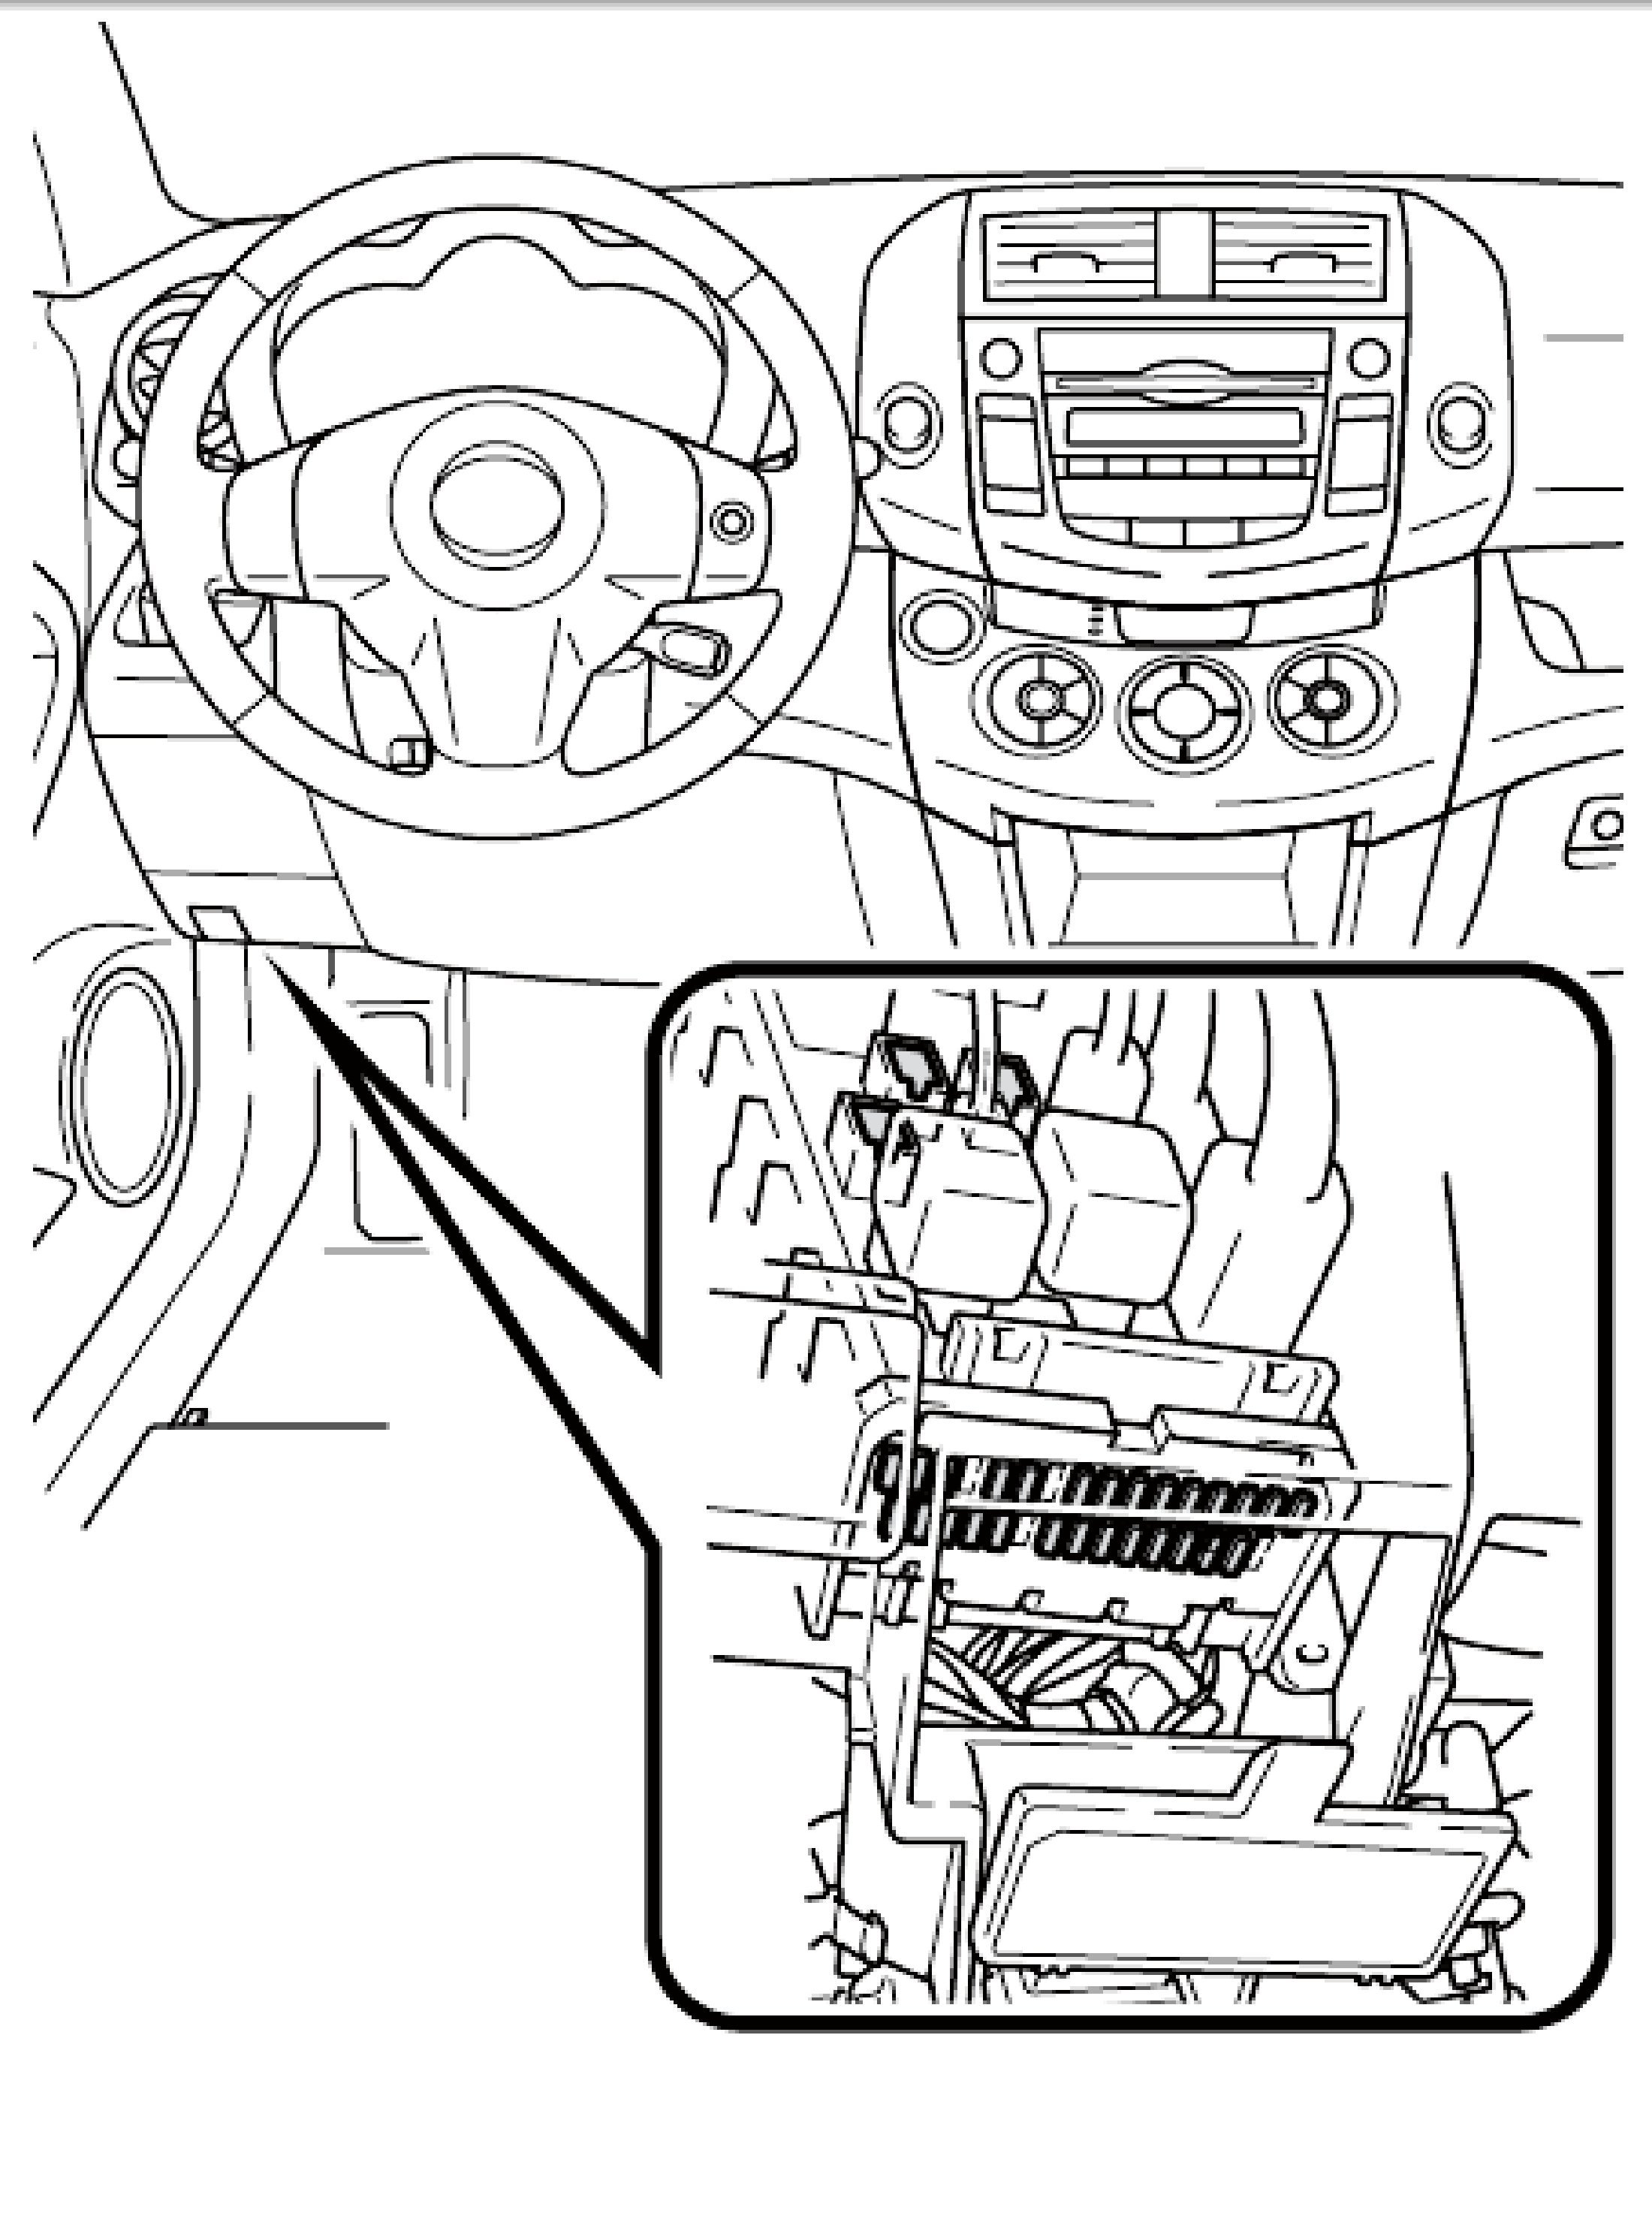 2003 cadillac fuse box diagram 2003 manual repair wiring and engine toyota corolla fuse box diagram image details